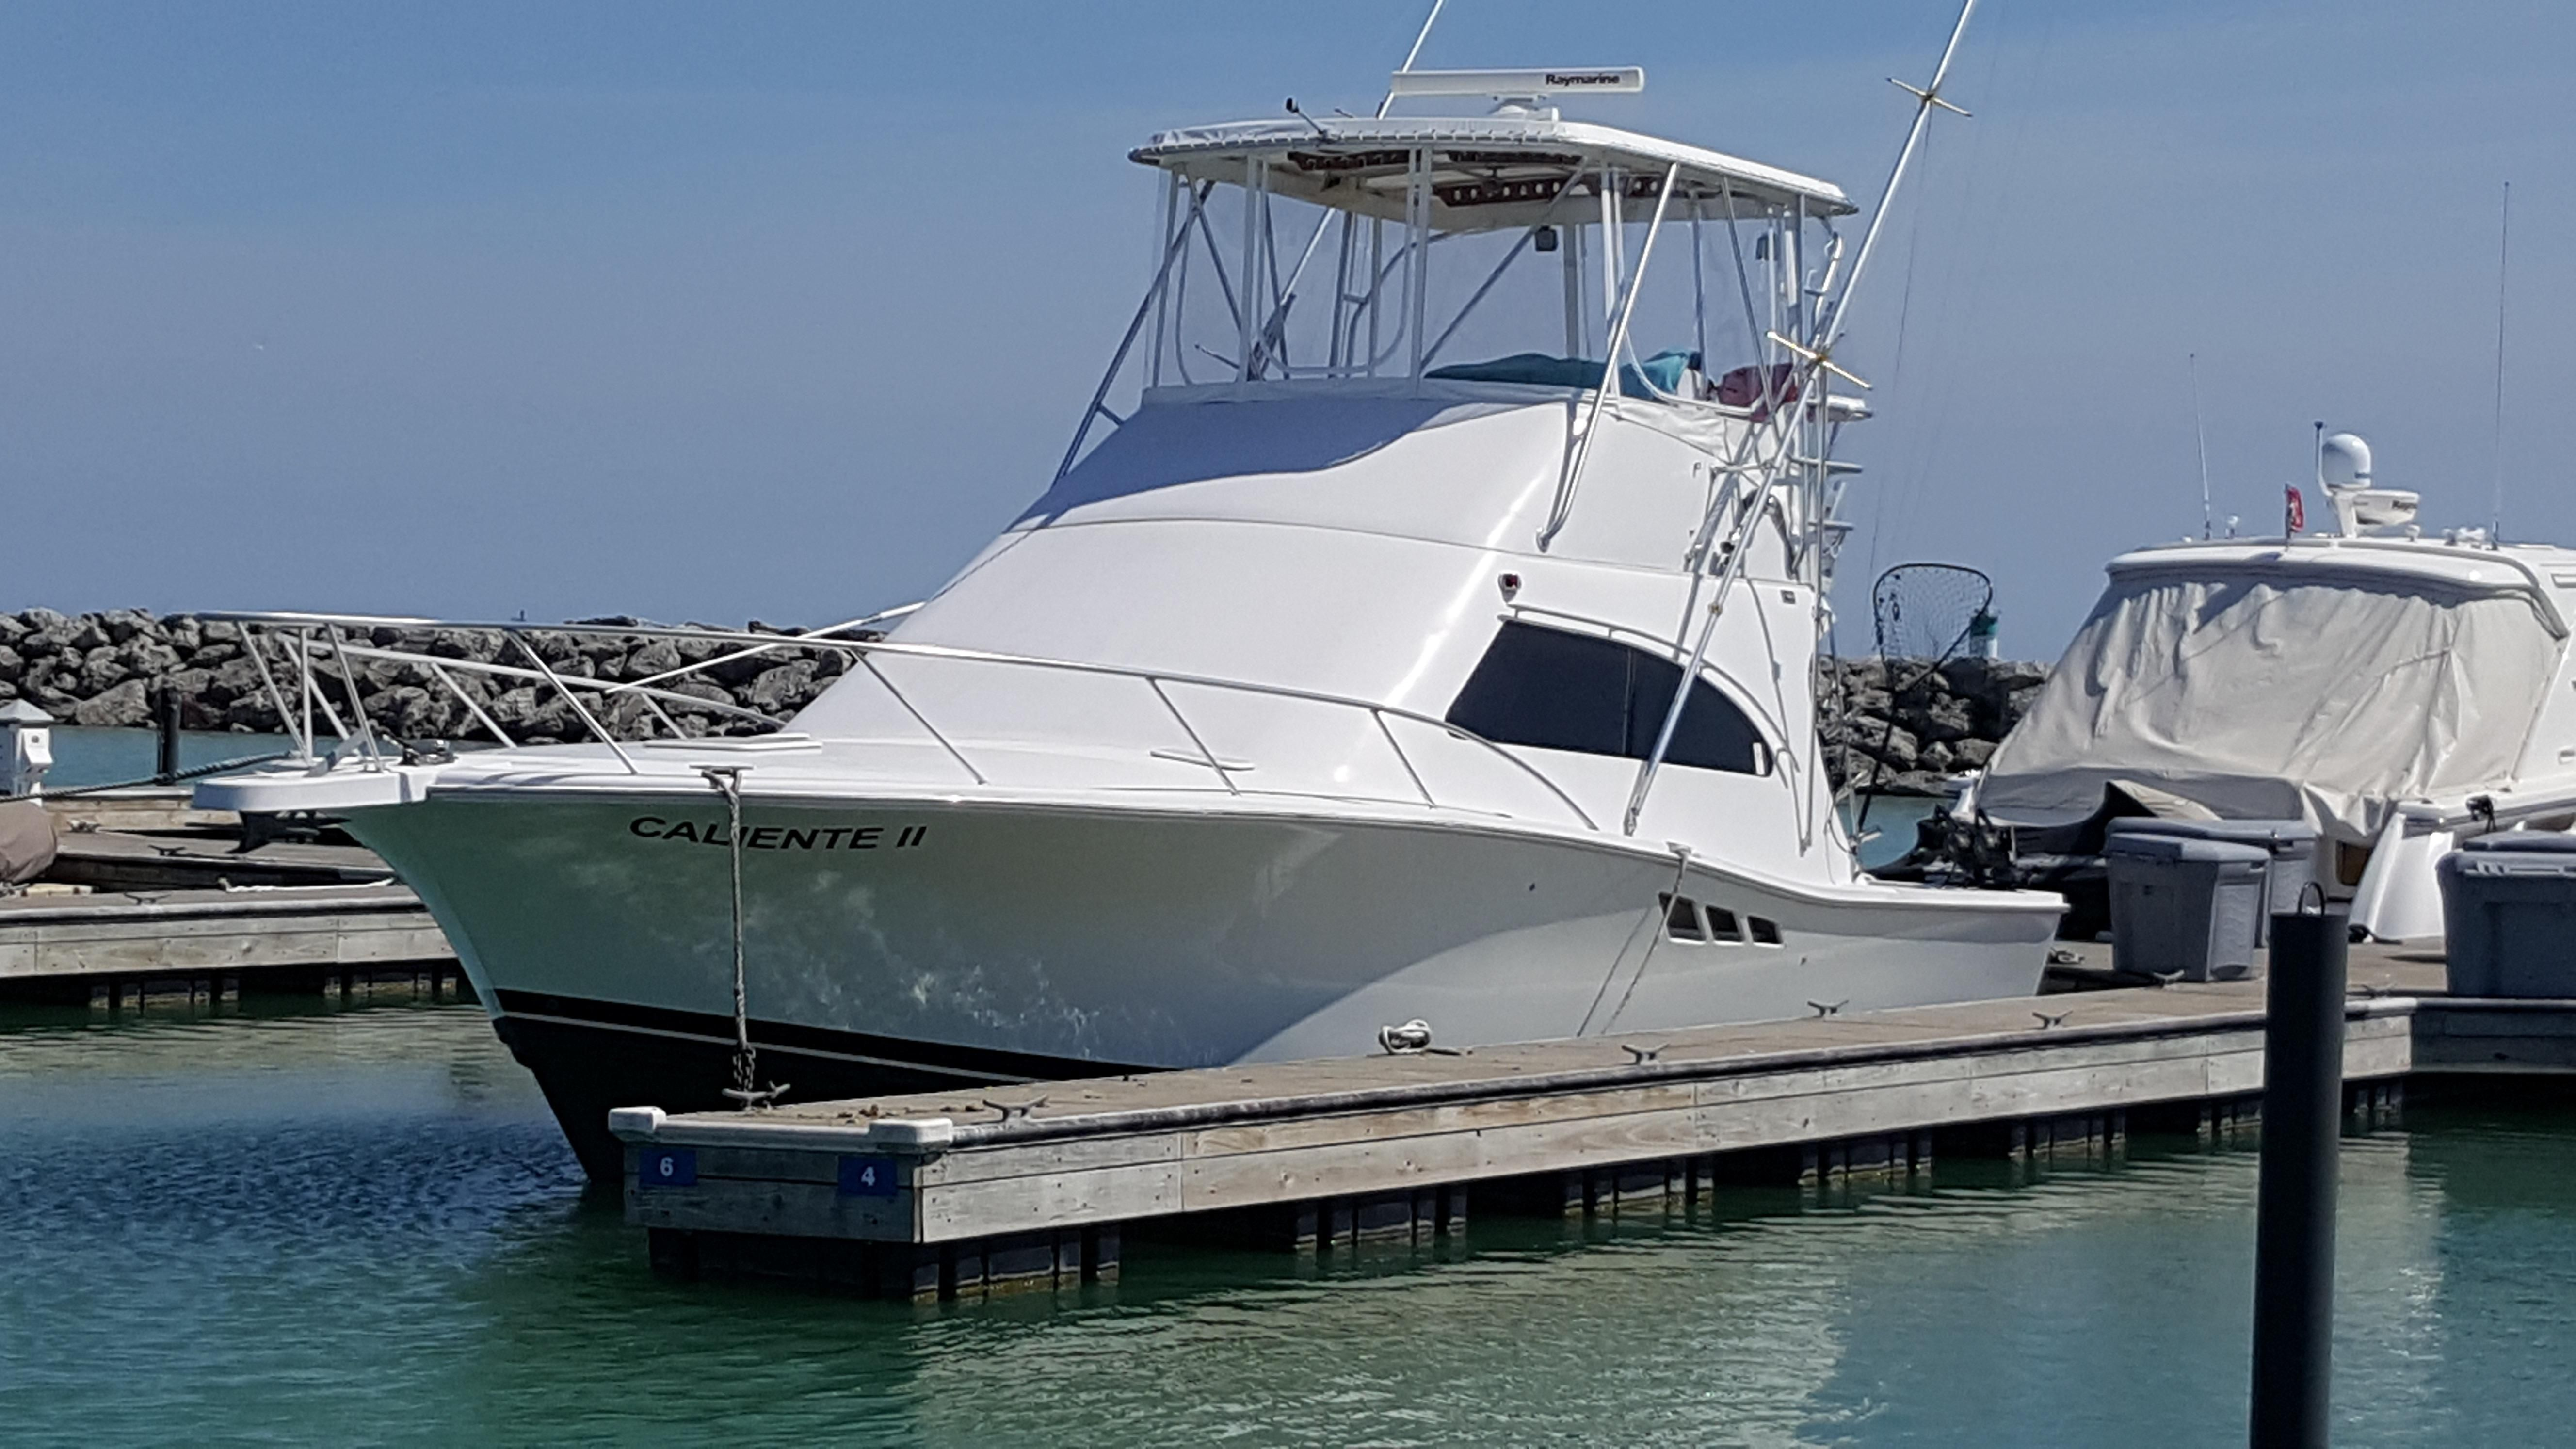 2000 luhrs 36 convertible sport fish power boat for sale for Sport fishing boats for sale by owner